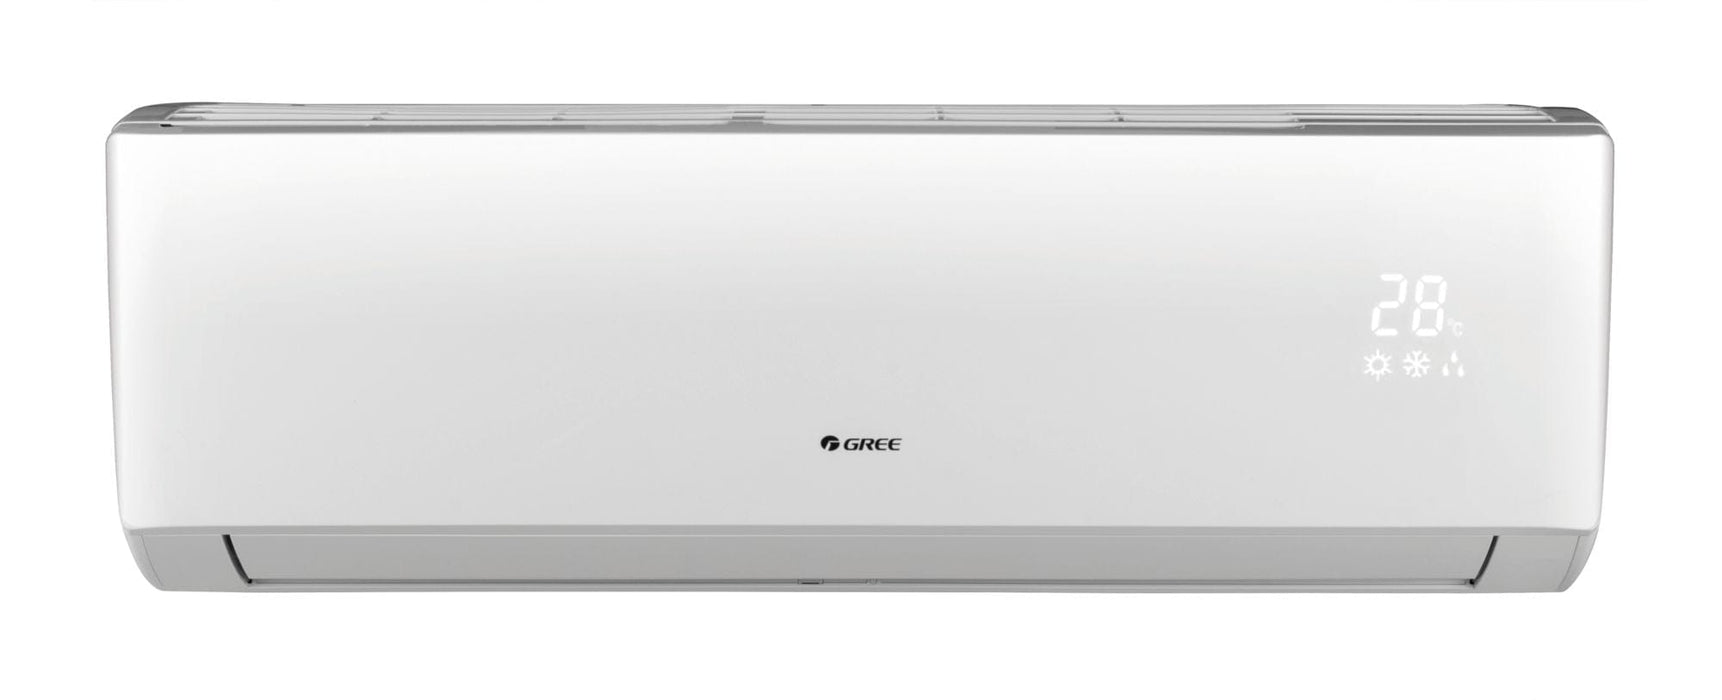 Gree 30,000 BTU 18 SEER VIREO+ Wall Mount Ductless Mini Split Indoor Unit 208-230V